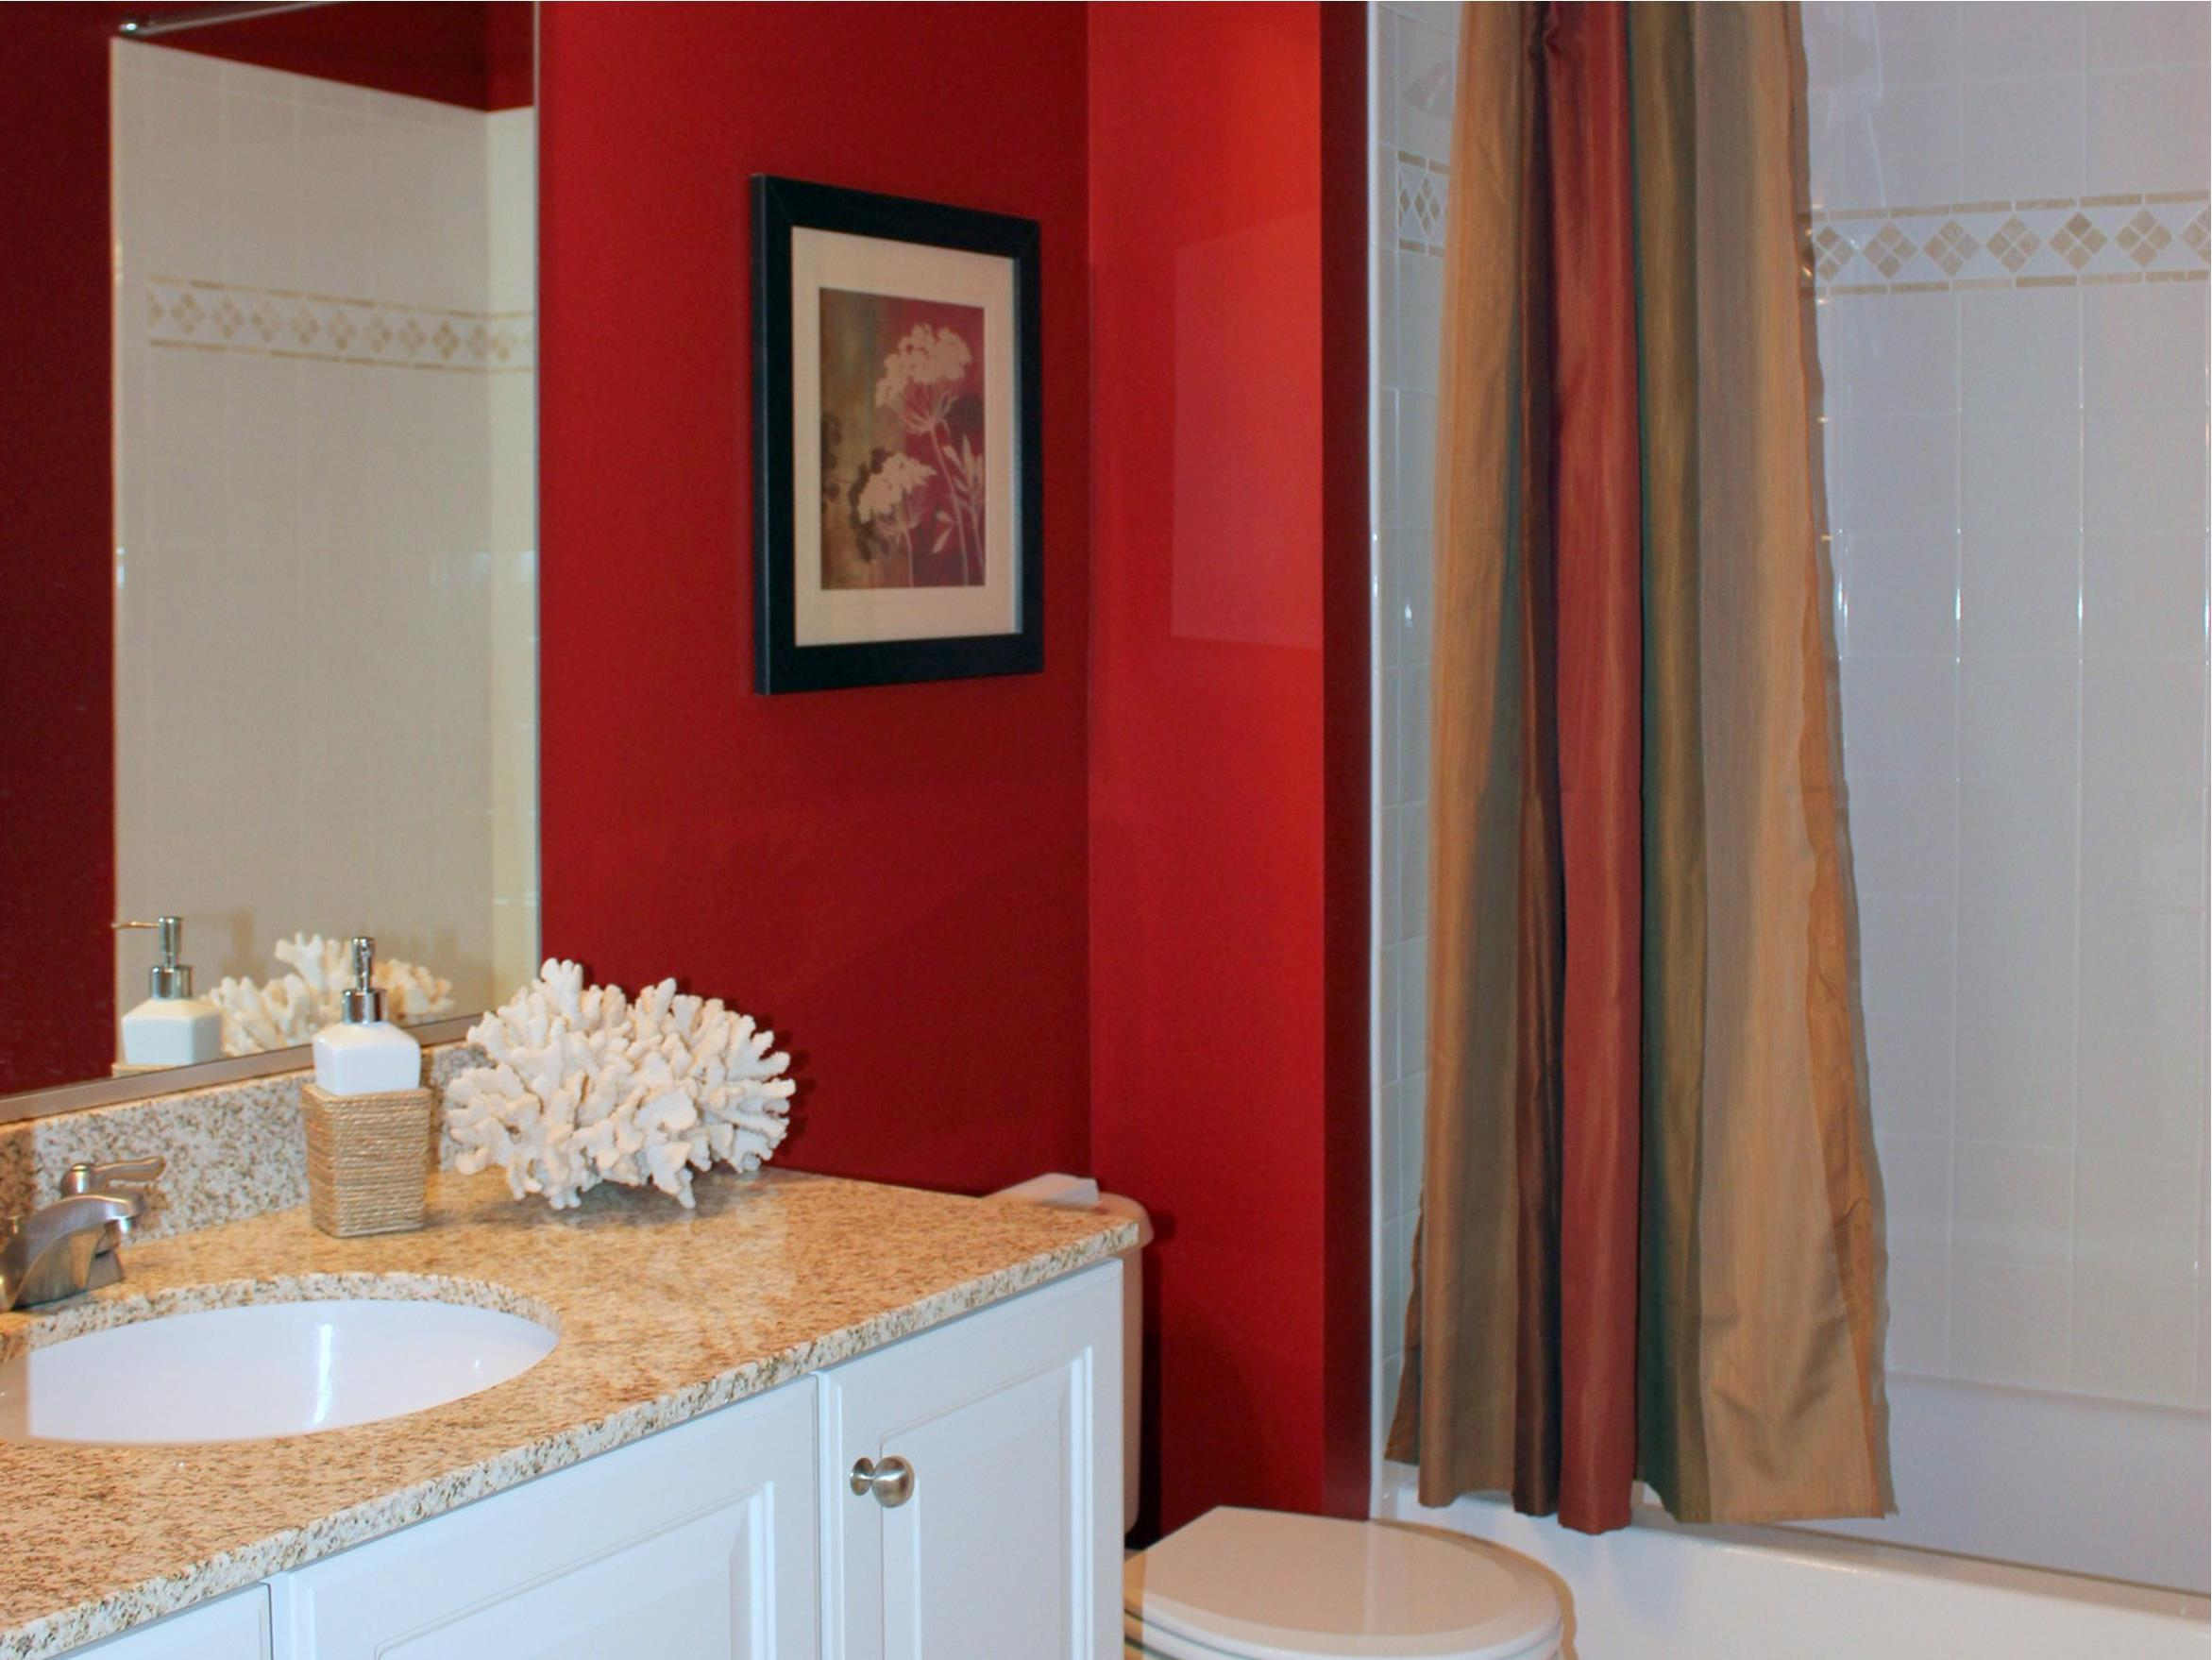 Bathroom featured in the Kitty Hawk Legacy By Covell Communities in Eastern Shore, MD